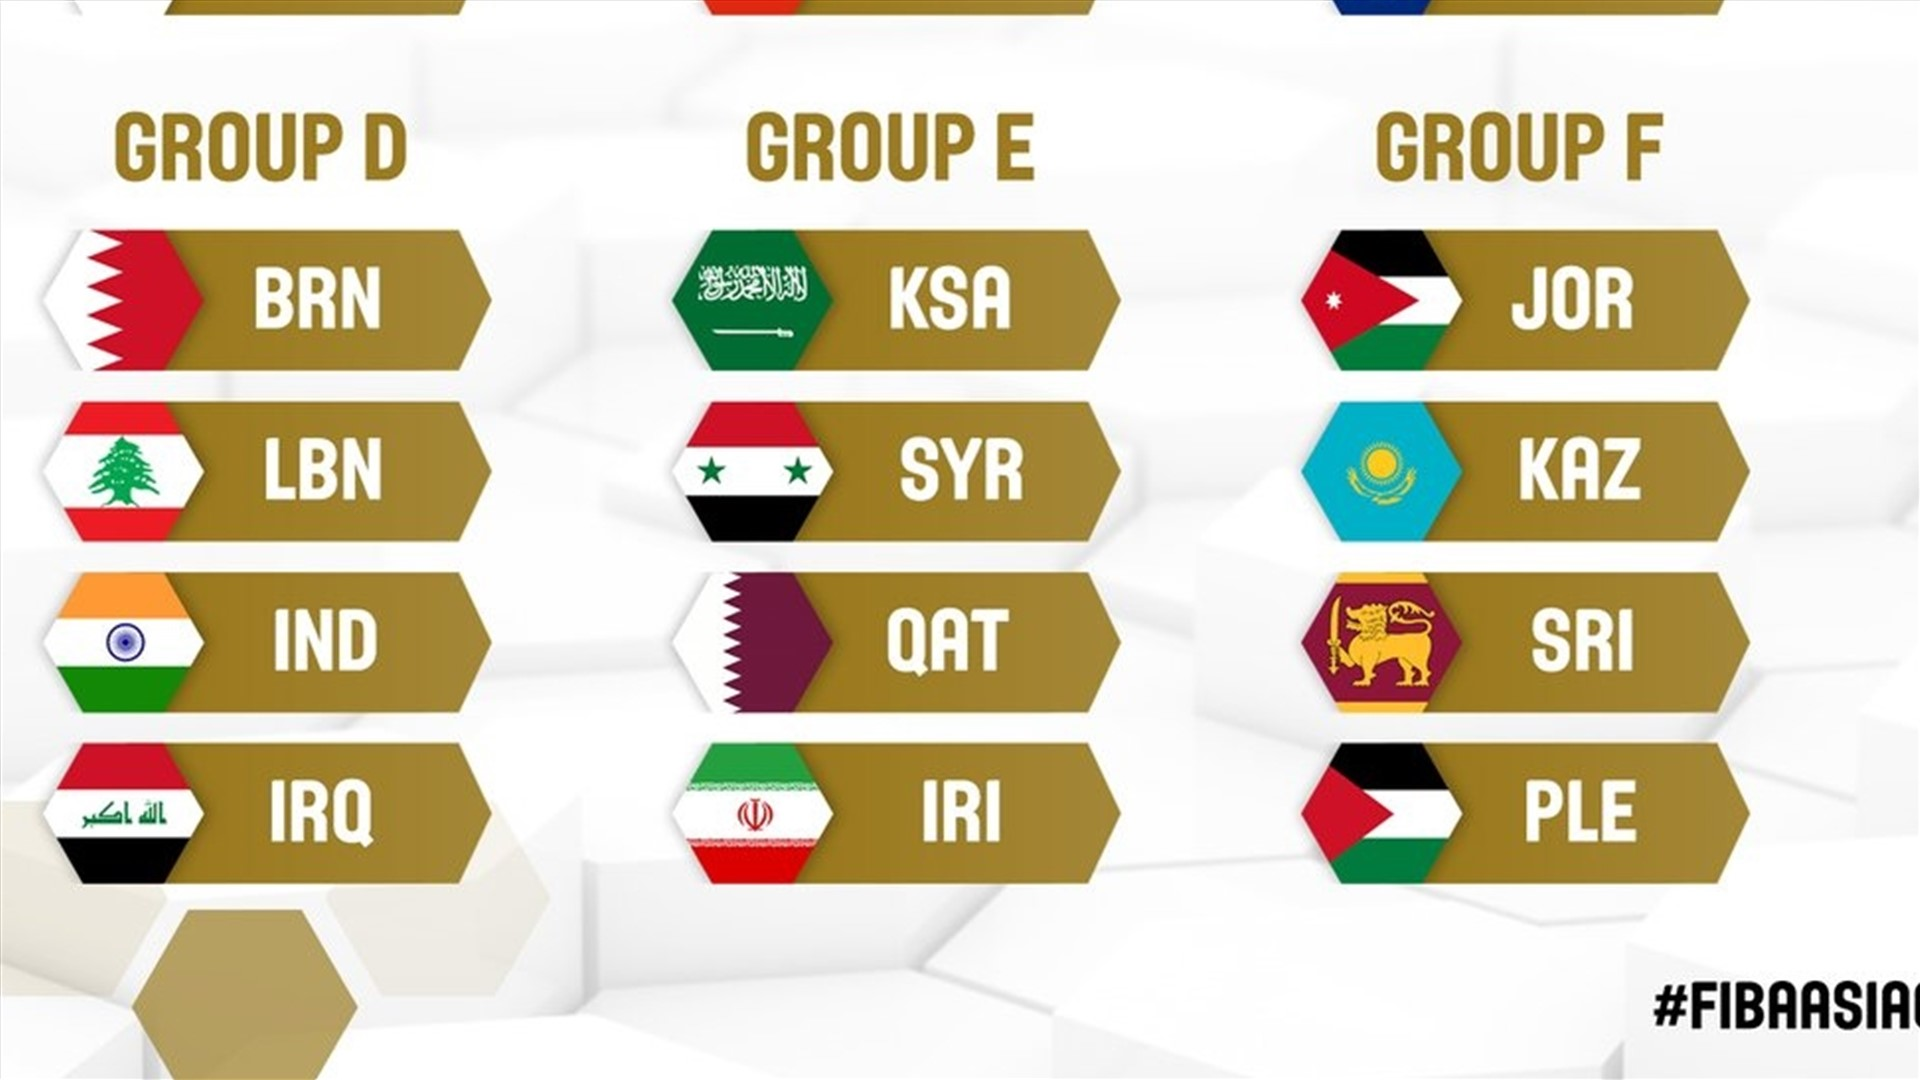 Fiba Asia Cup 2021 Qualifiers Draw India Placed In Group D Alongside Bahrain Lebanon And Iraq Nba Com India The Official Site Of The Nba